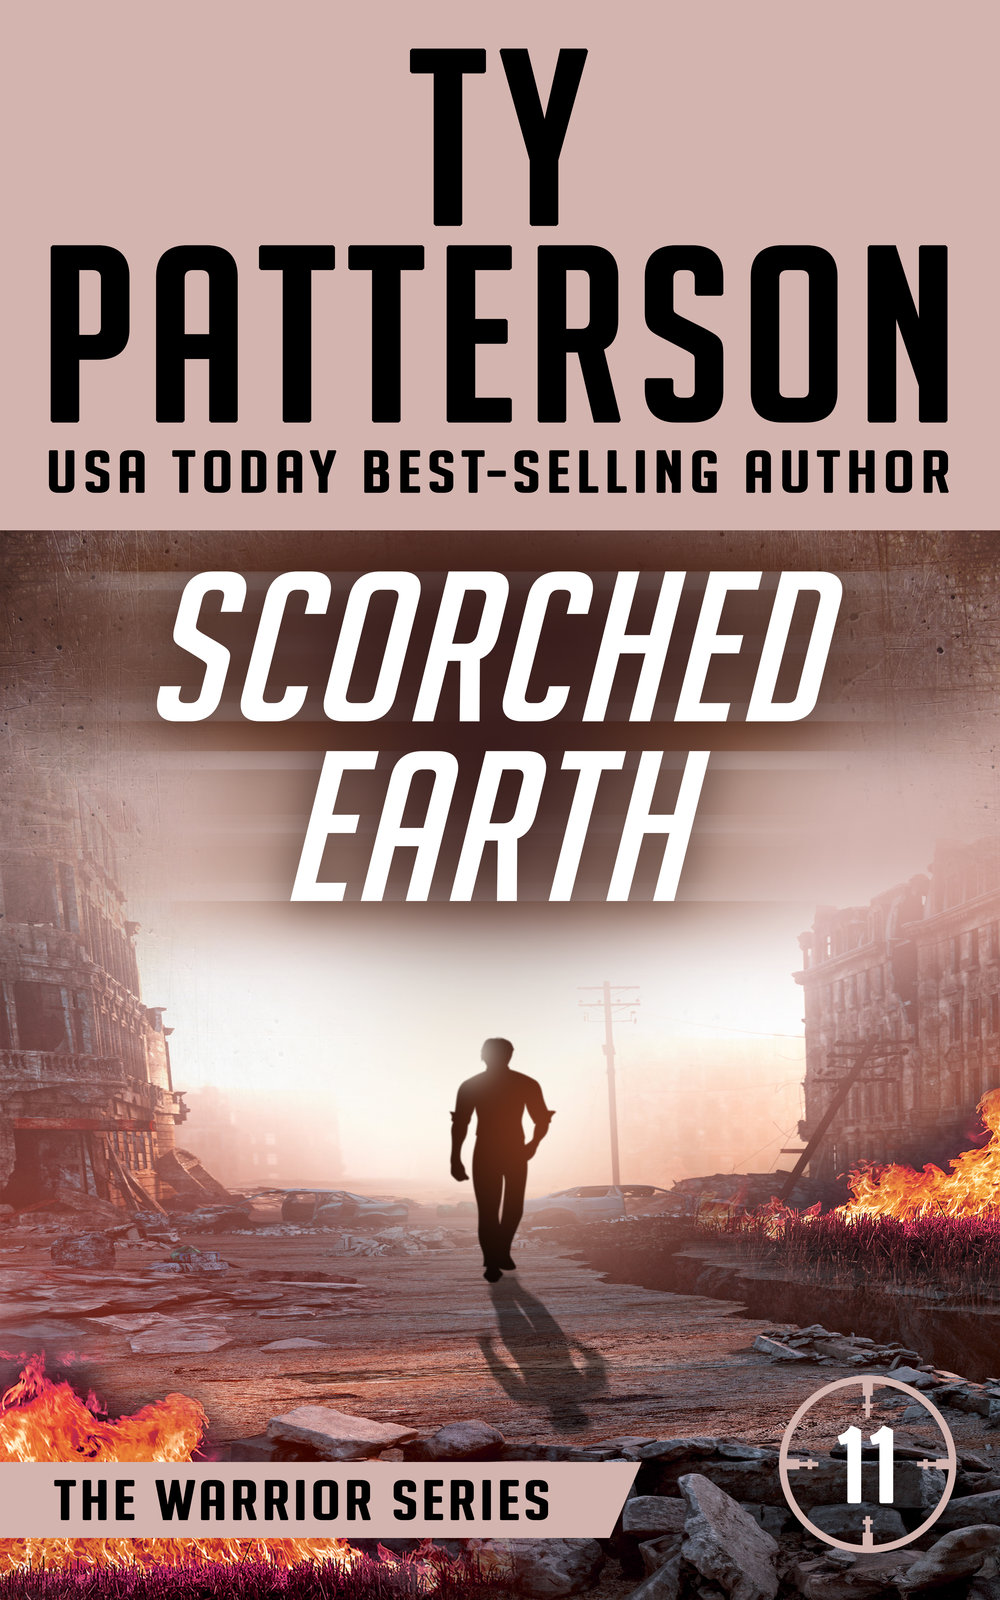 Scorched+Earth+2018+2.jpg